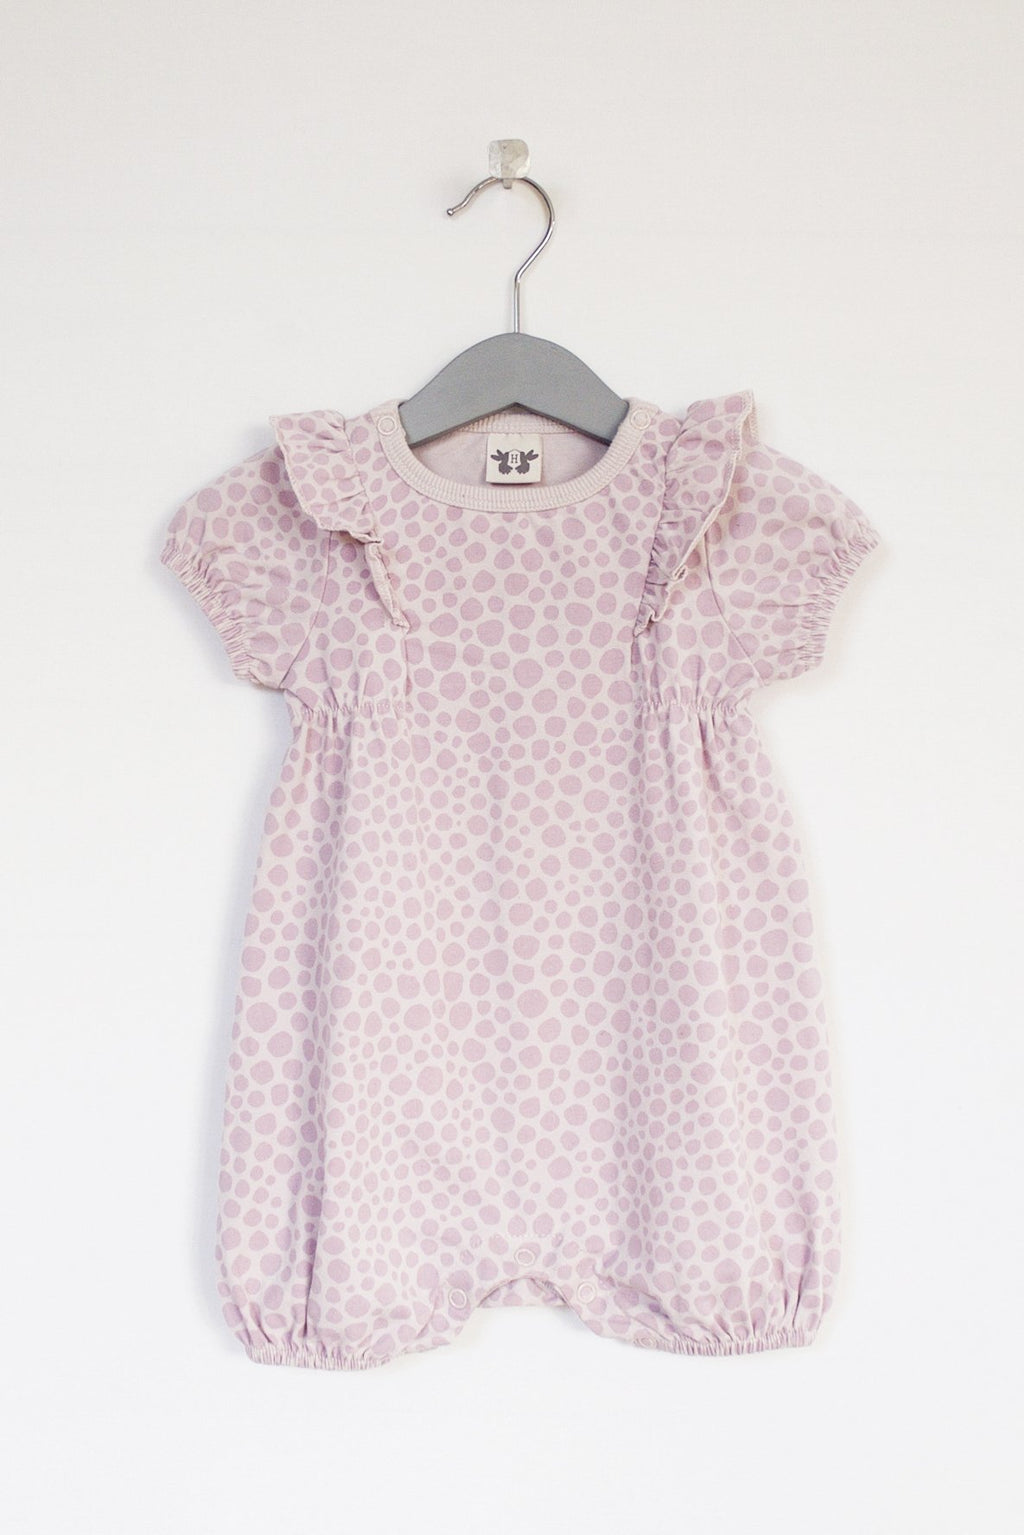 IRIS Playsuit / Onesie short sleeve - print pink